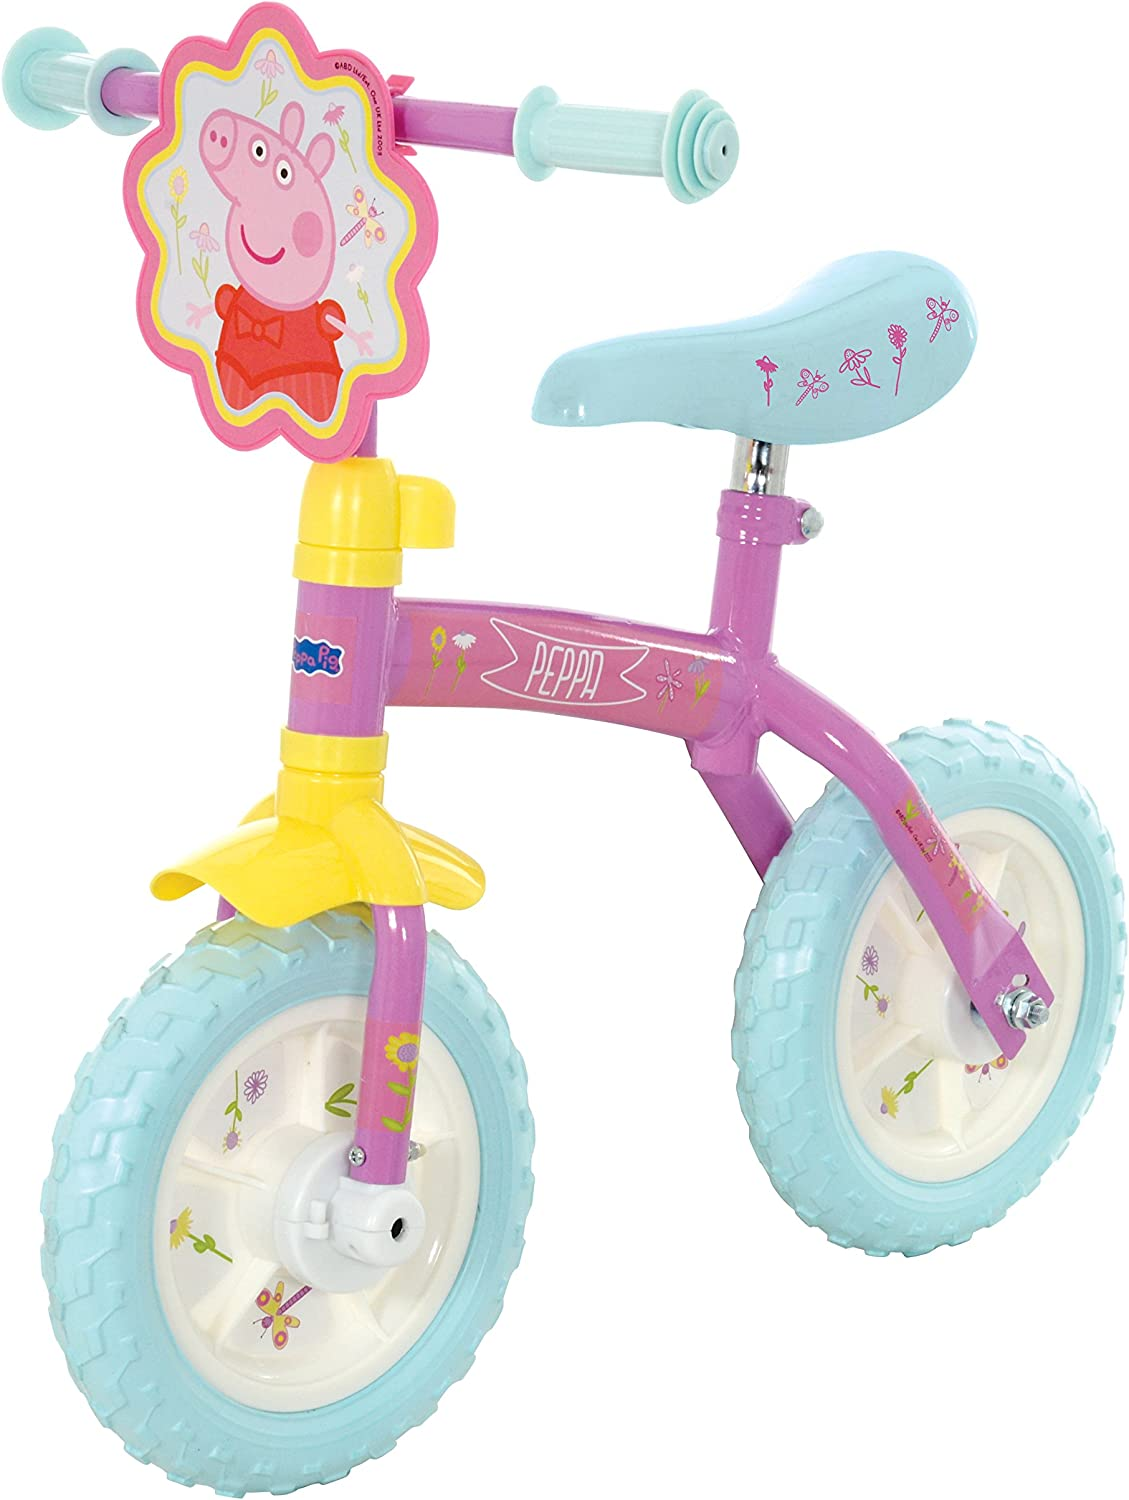 Peppa Pig M14270 10-Inch 2-in-1 Training Bike: Amazon.es: Juguetes ...